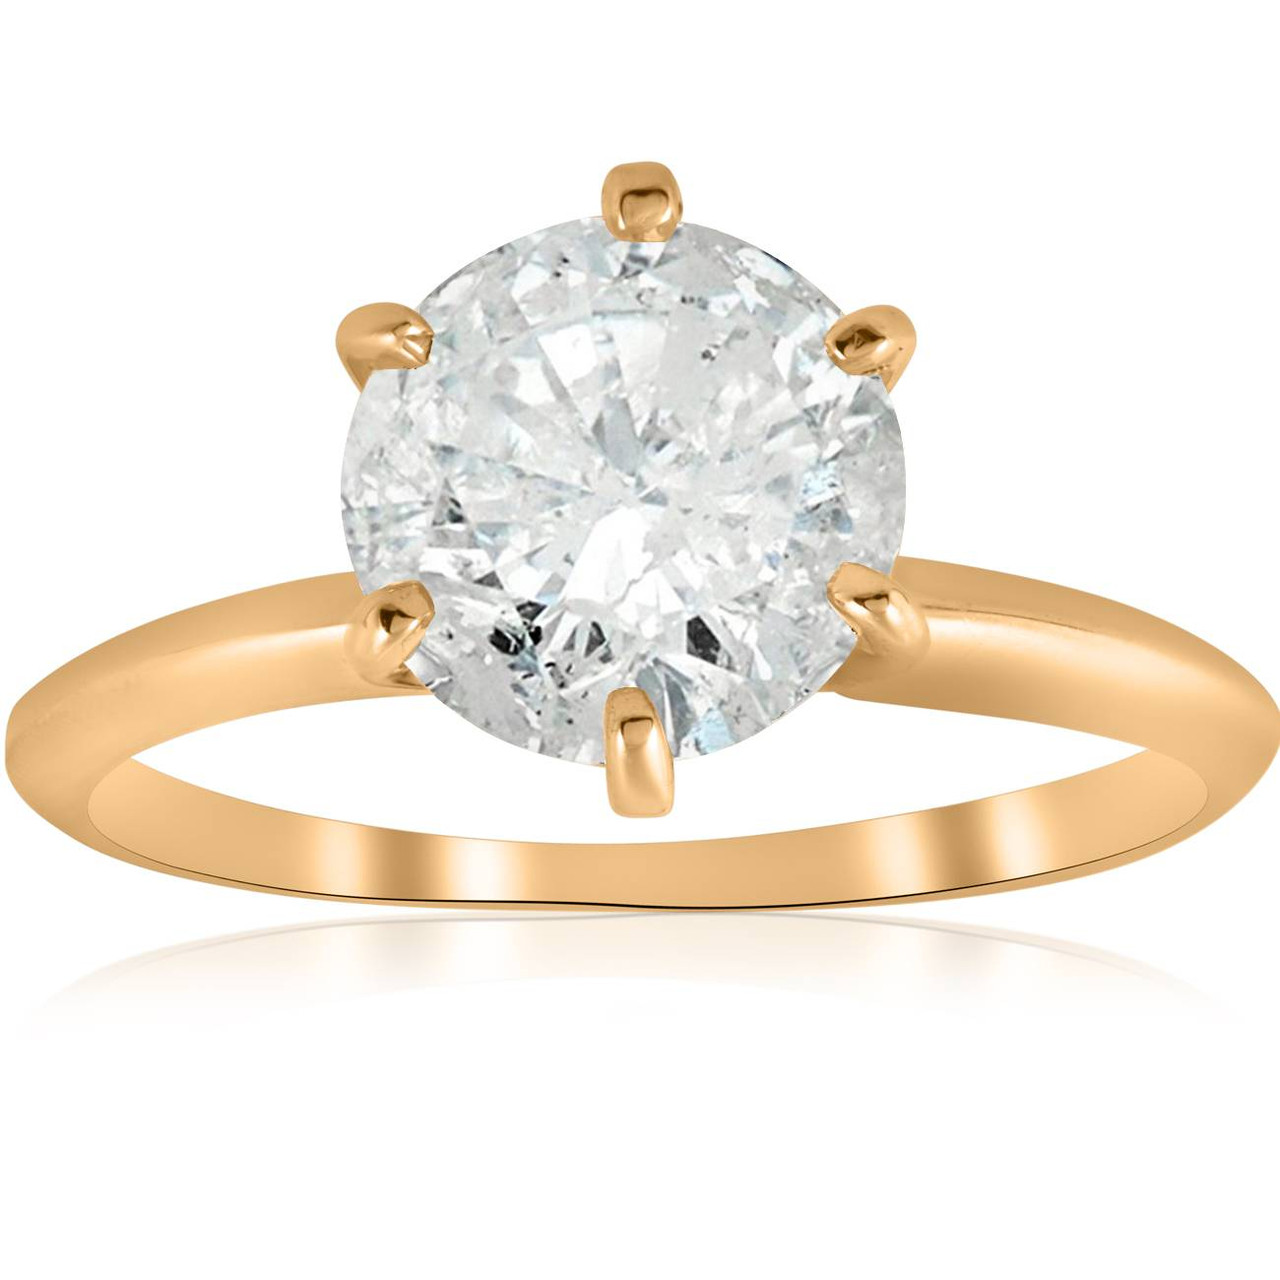 662b7e1d279 2 1 2 ct Round Solitaire Diamond Engagement Ring 14k Yellow Gold Enhanced  (G H